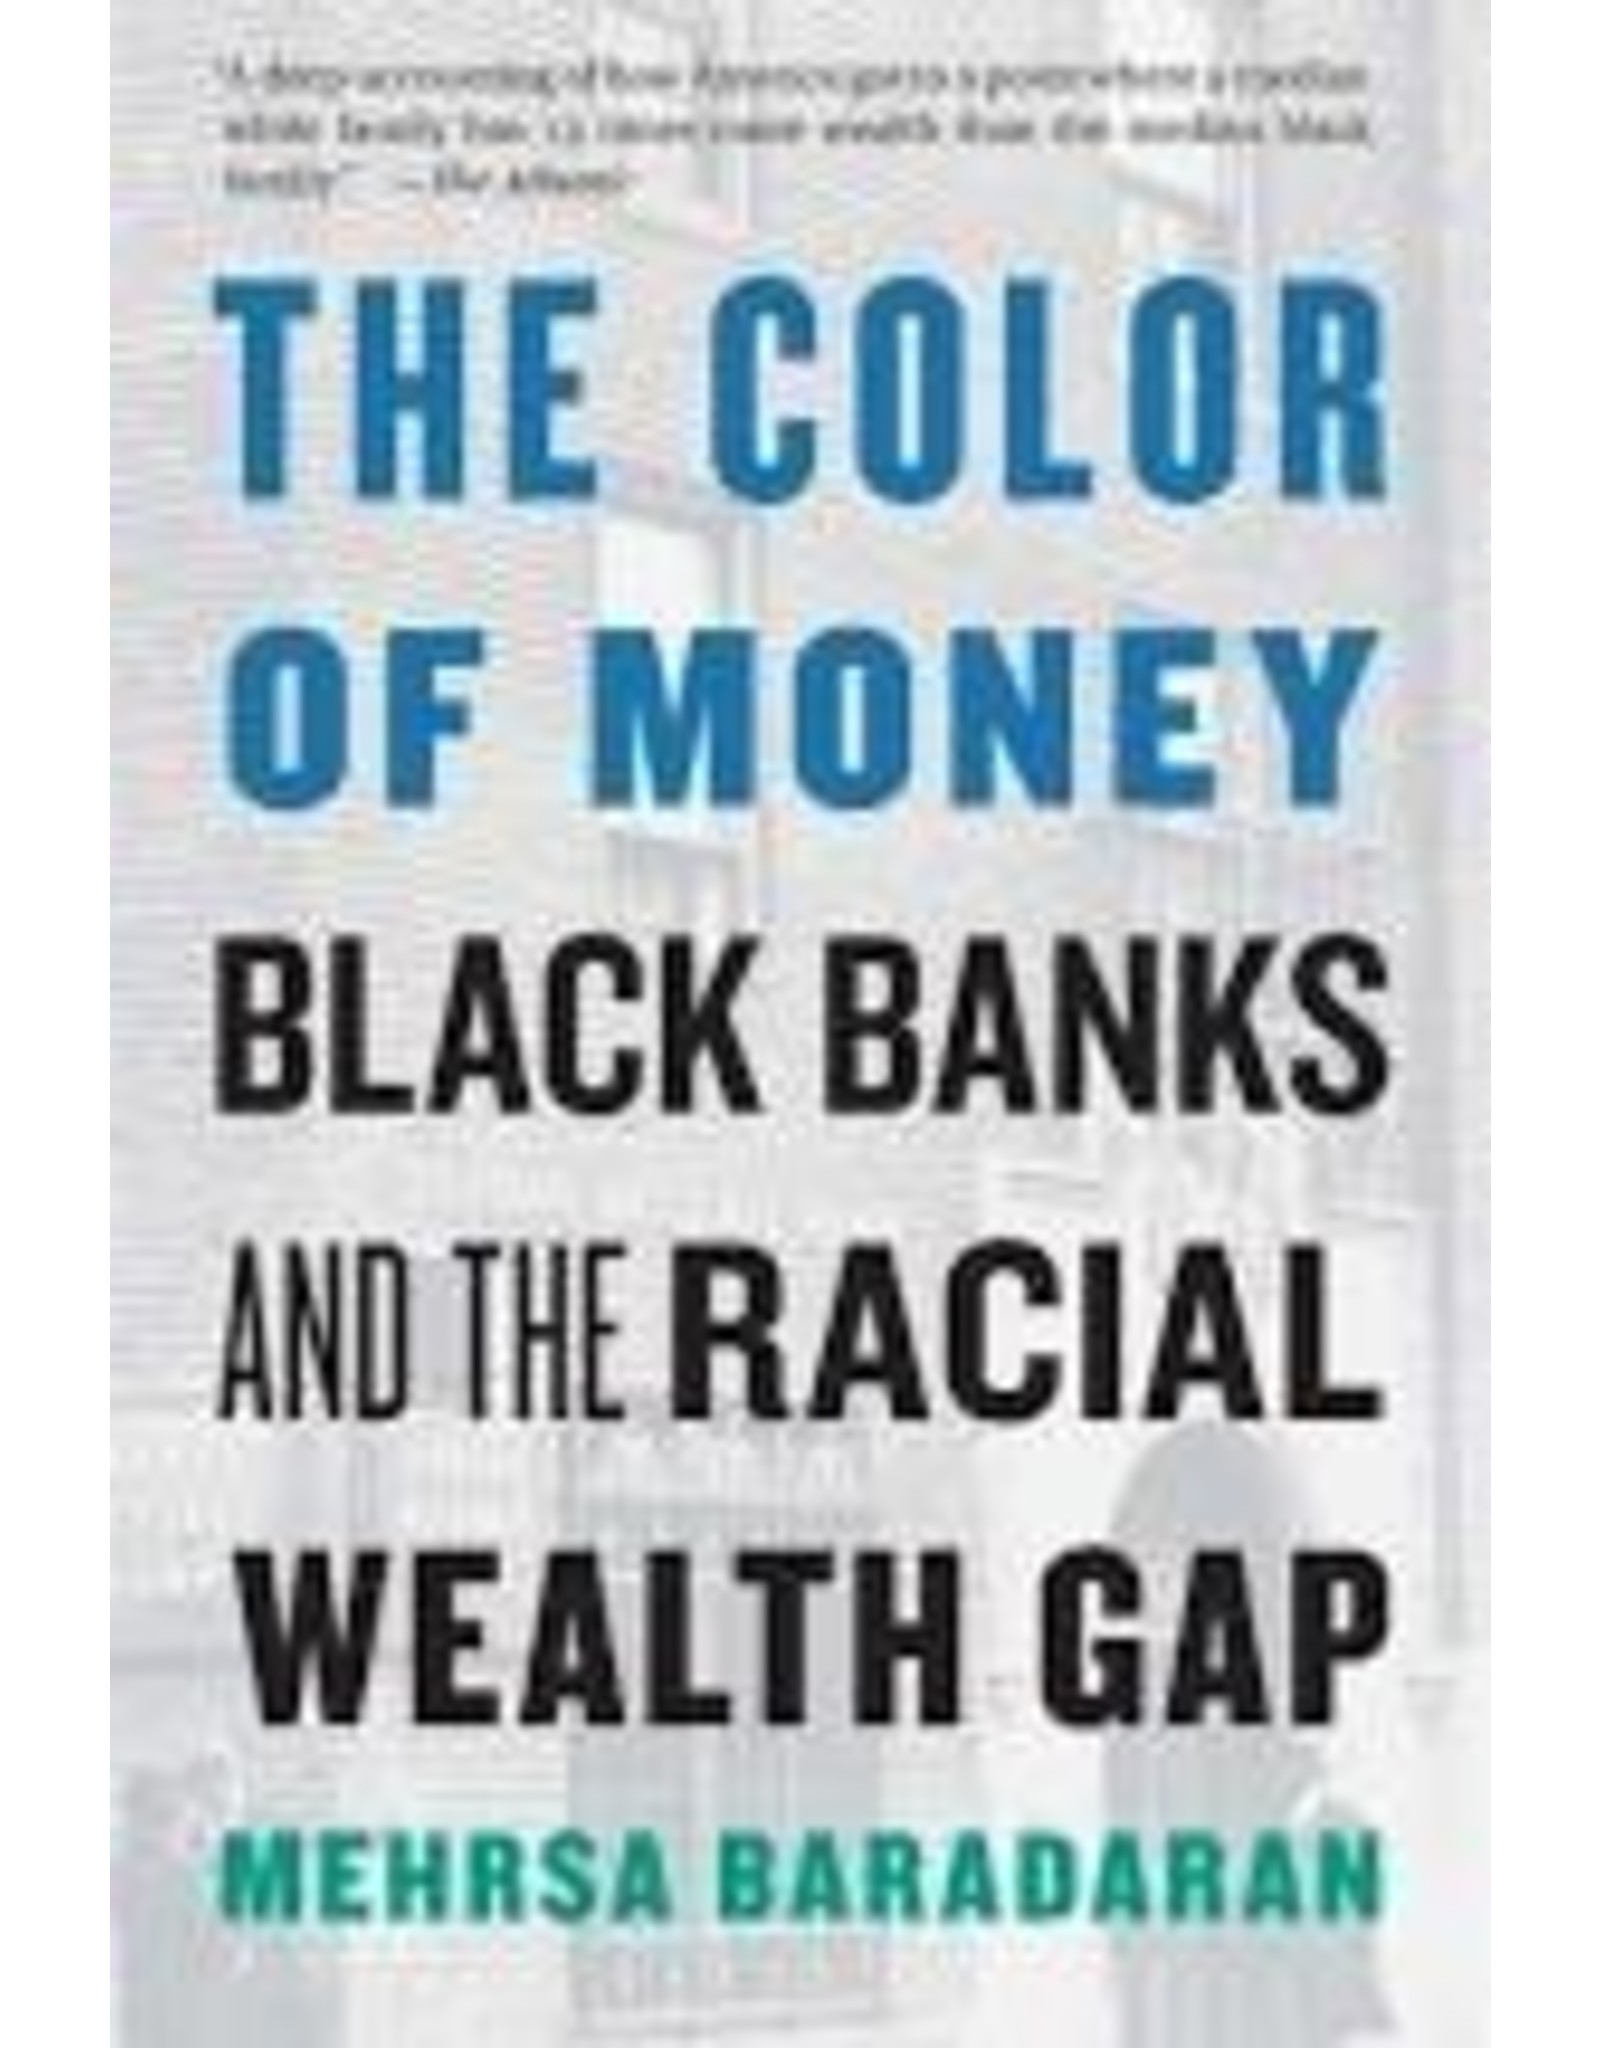 Books The Color of Money: Black Banks and the Racial Wealth Gap by Mehrsa Baradaran